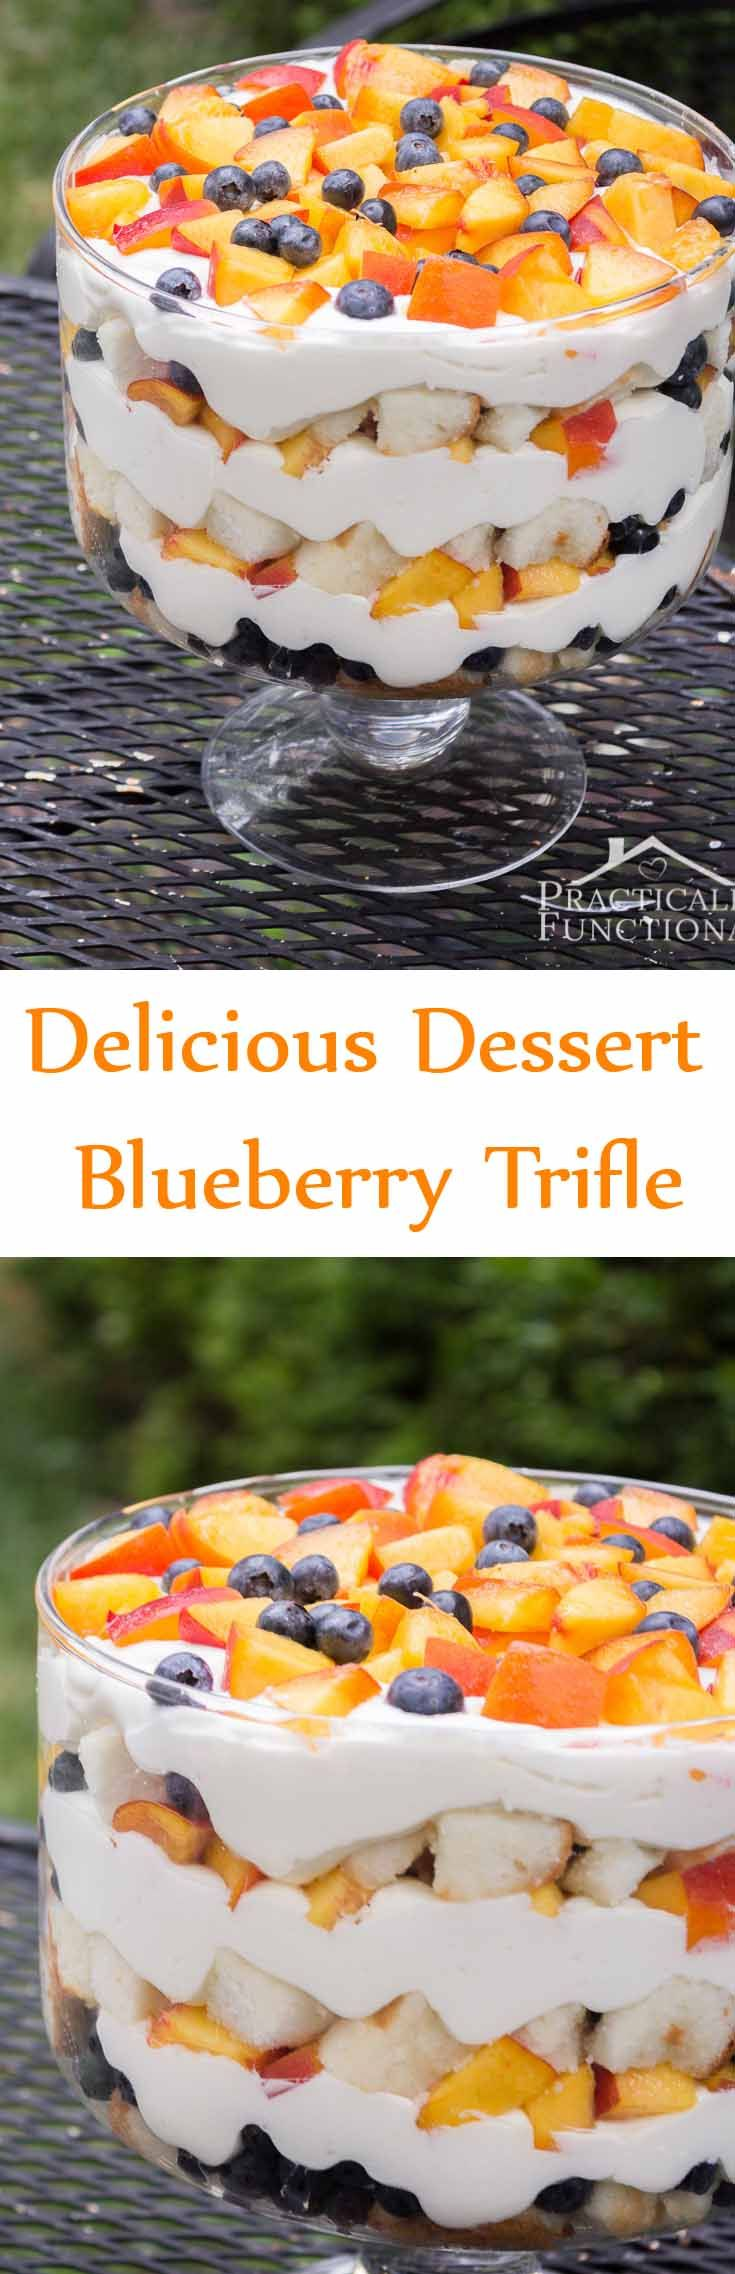 Trifle is one kind of dessert, which is usually made with fruit, sponge  cake and custard; it often topped with ice cream or whipped cream. Here is a  blueberry trifle recipe, where the lemon curd gives an extra layer of  decadence.